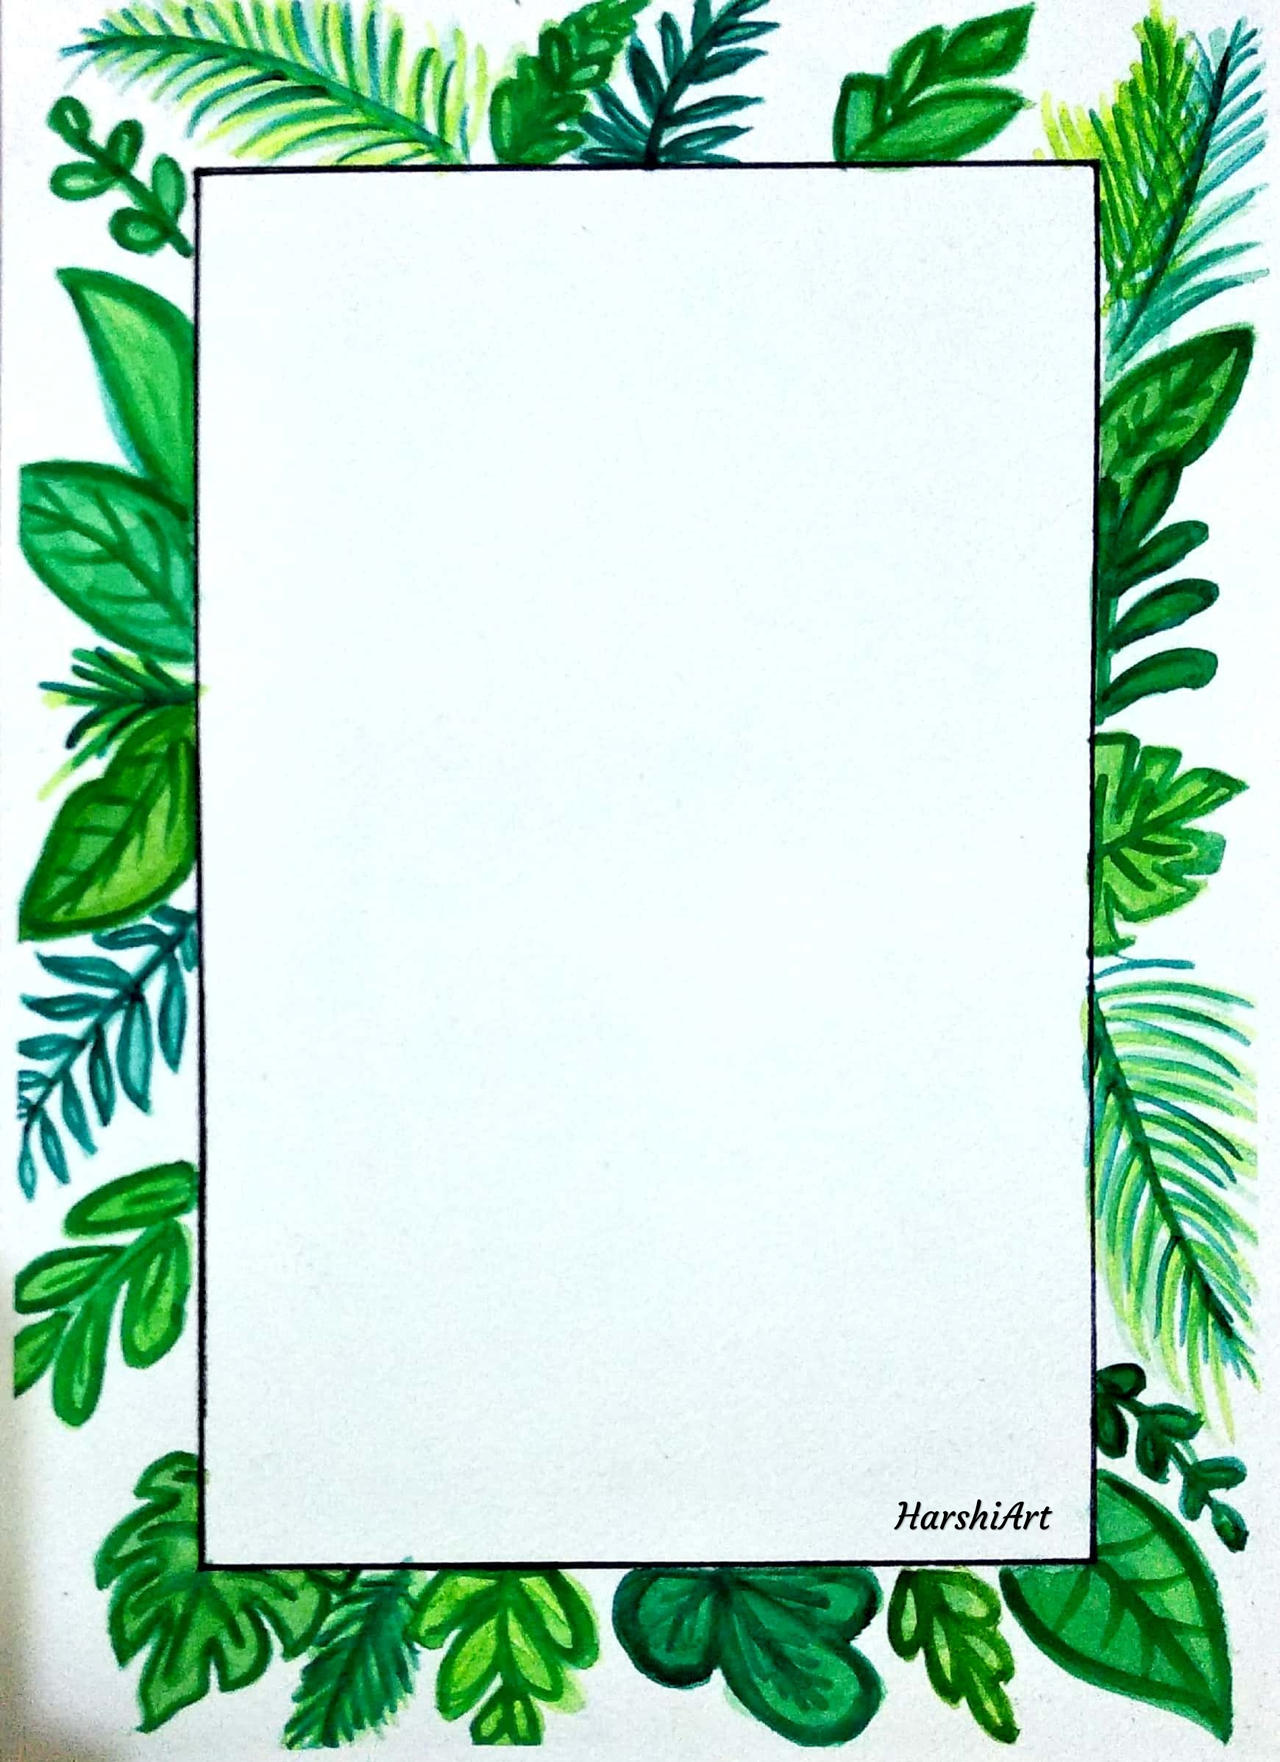 Watercolour Tropical Leaves Border By Harshiart On Deviantart Pastel tropical palm leaves and bamboo green mauve beige by kathy ireland wallpaper border nl57002b. watercolour tropical leaves border by